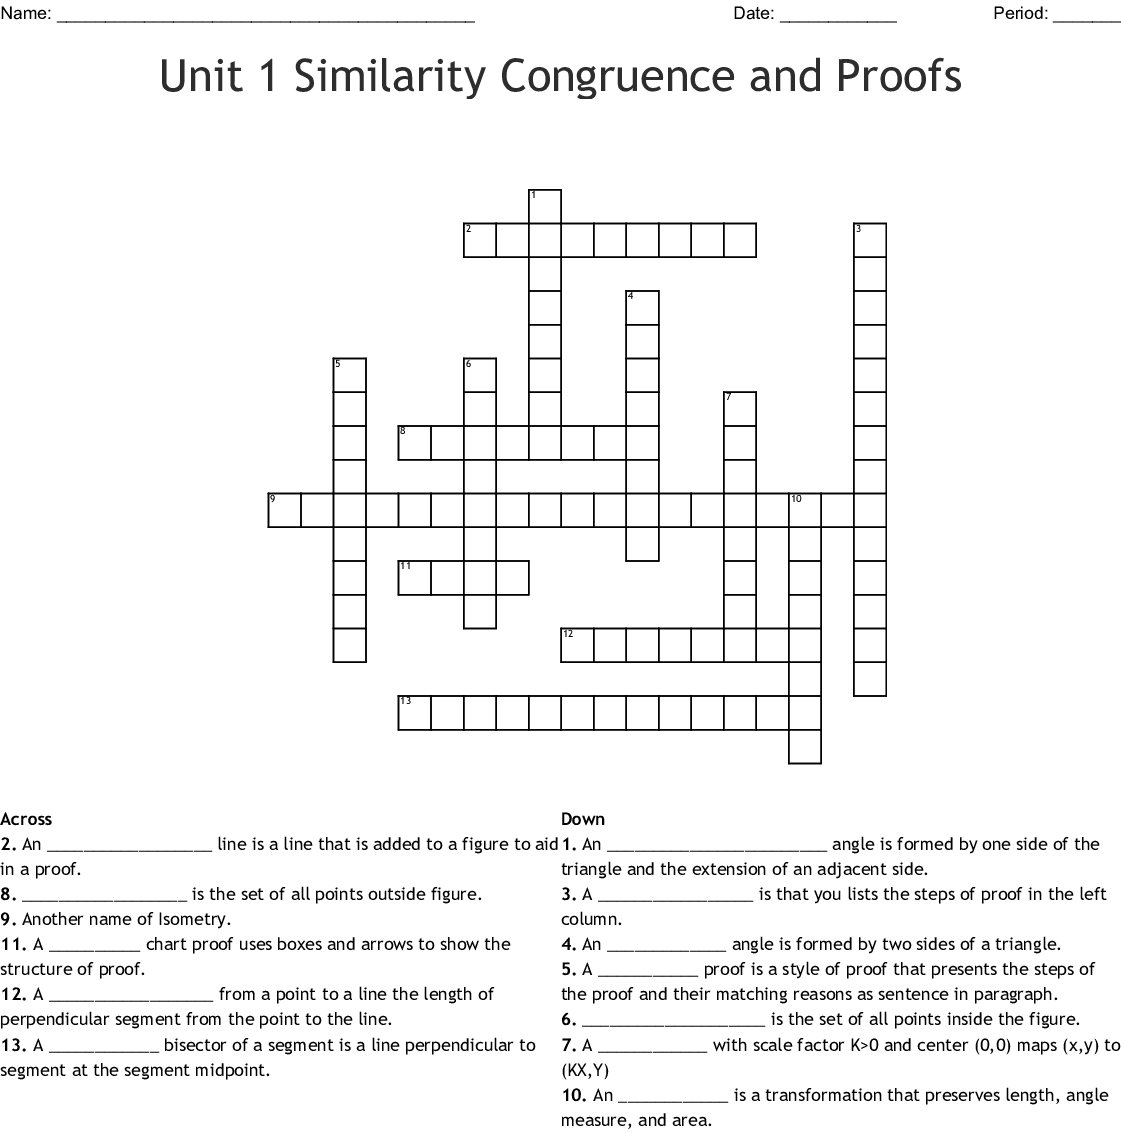 Unit 1 Similarity Congruence And Proofs Crossword